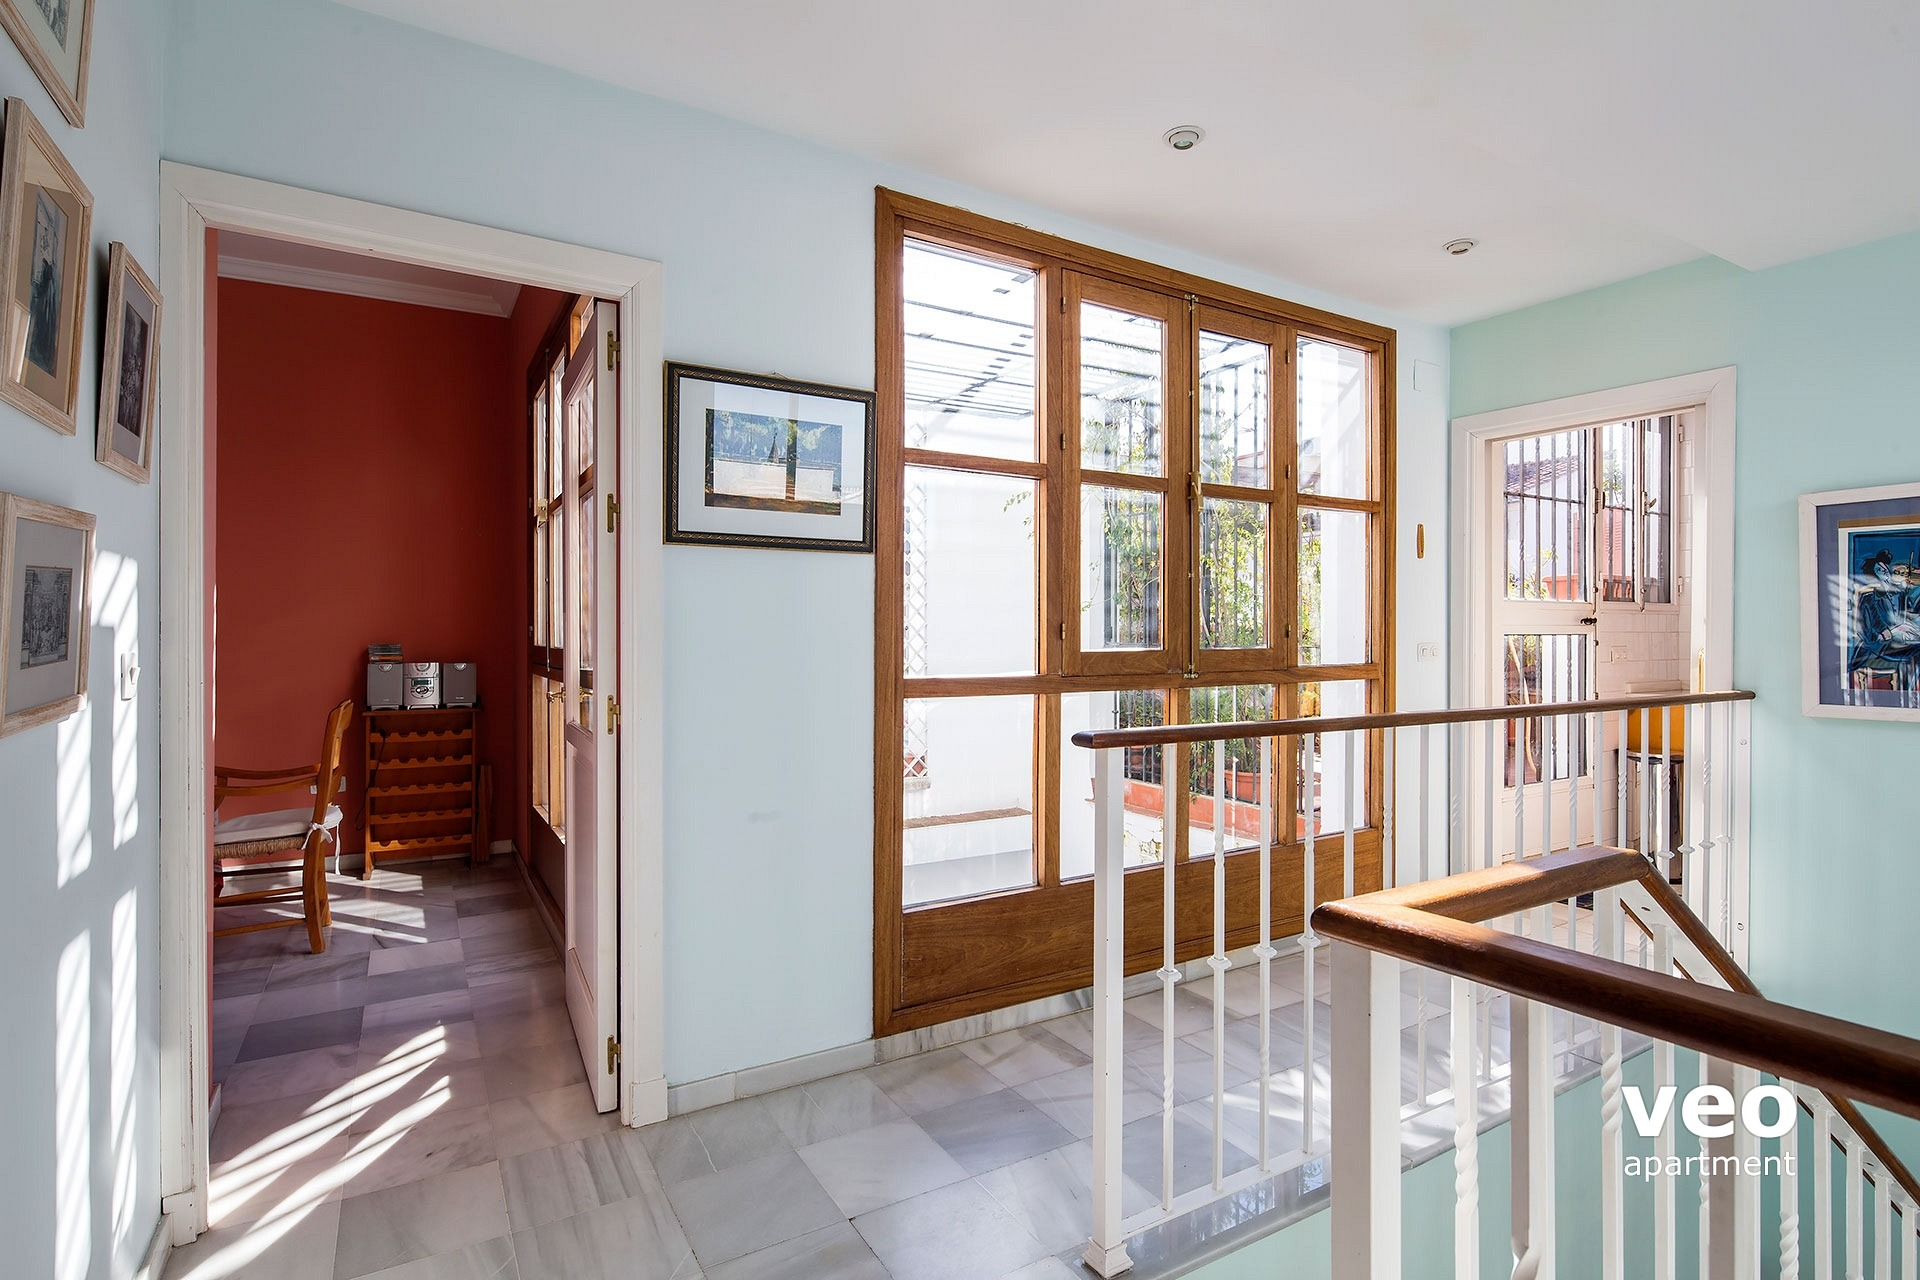 Seville Apartment Pedro Miguel Street Seville Spain | Miguel Terrace |  Furnished Apartment